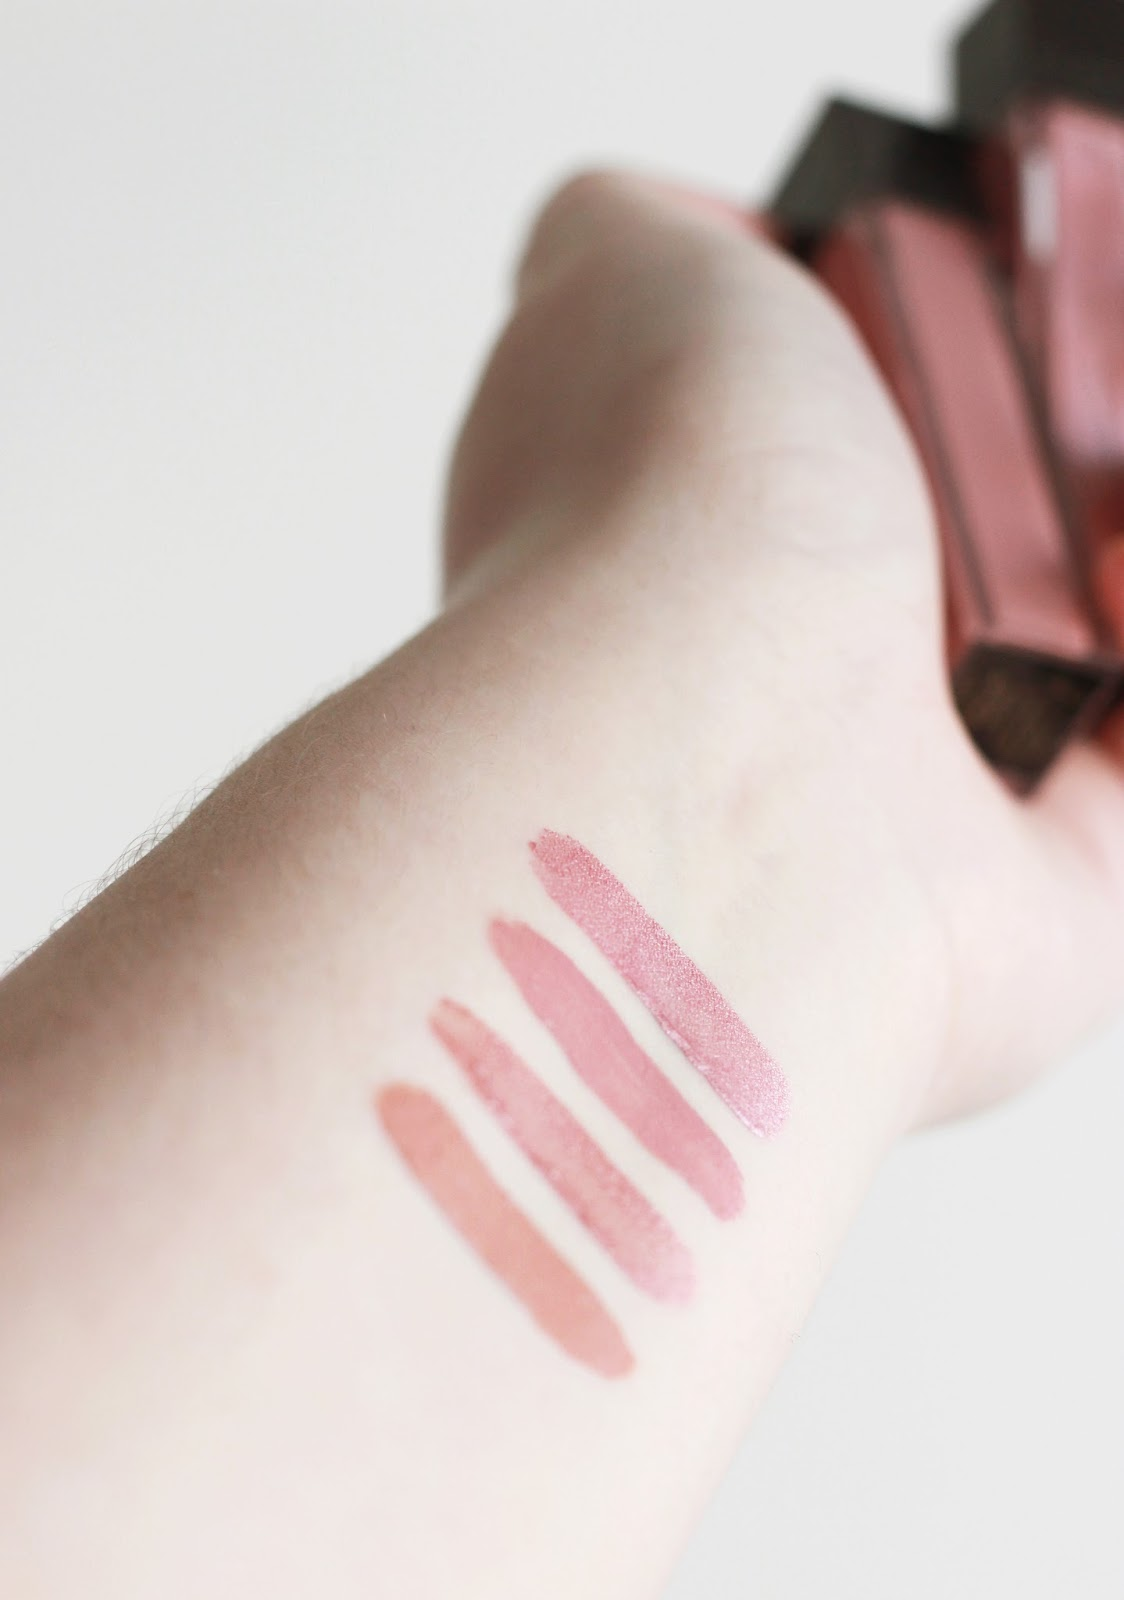 Jouer Creme Long Wear Lip Creme Liquid Lipstick Review